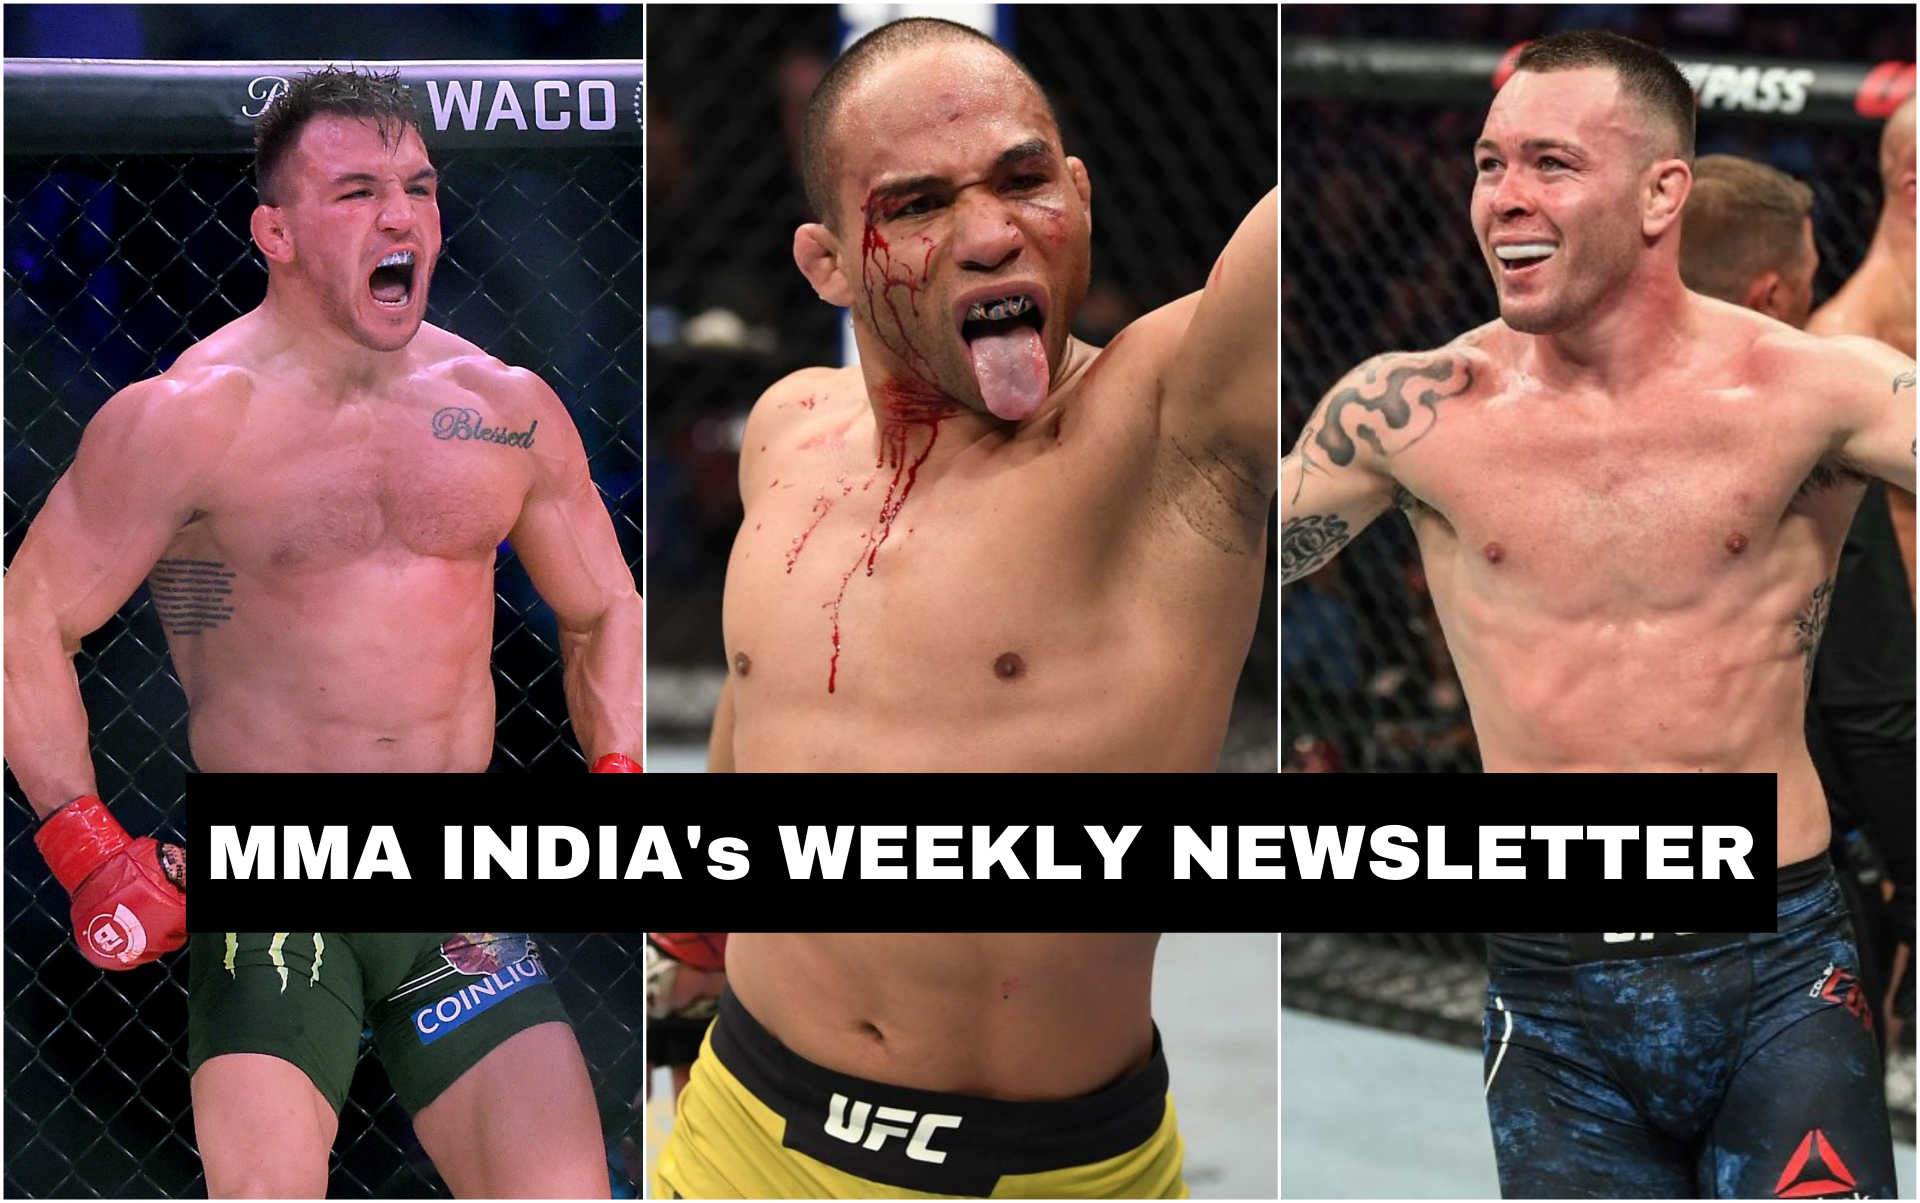 MMA India's Weekly Roundup (15-21 September): Michael Chandler signs with UFC, John Dodson released from UFC - Chandler